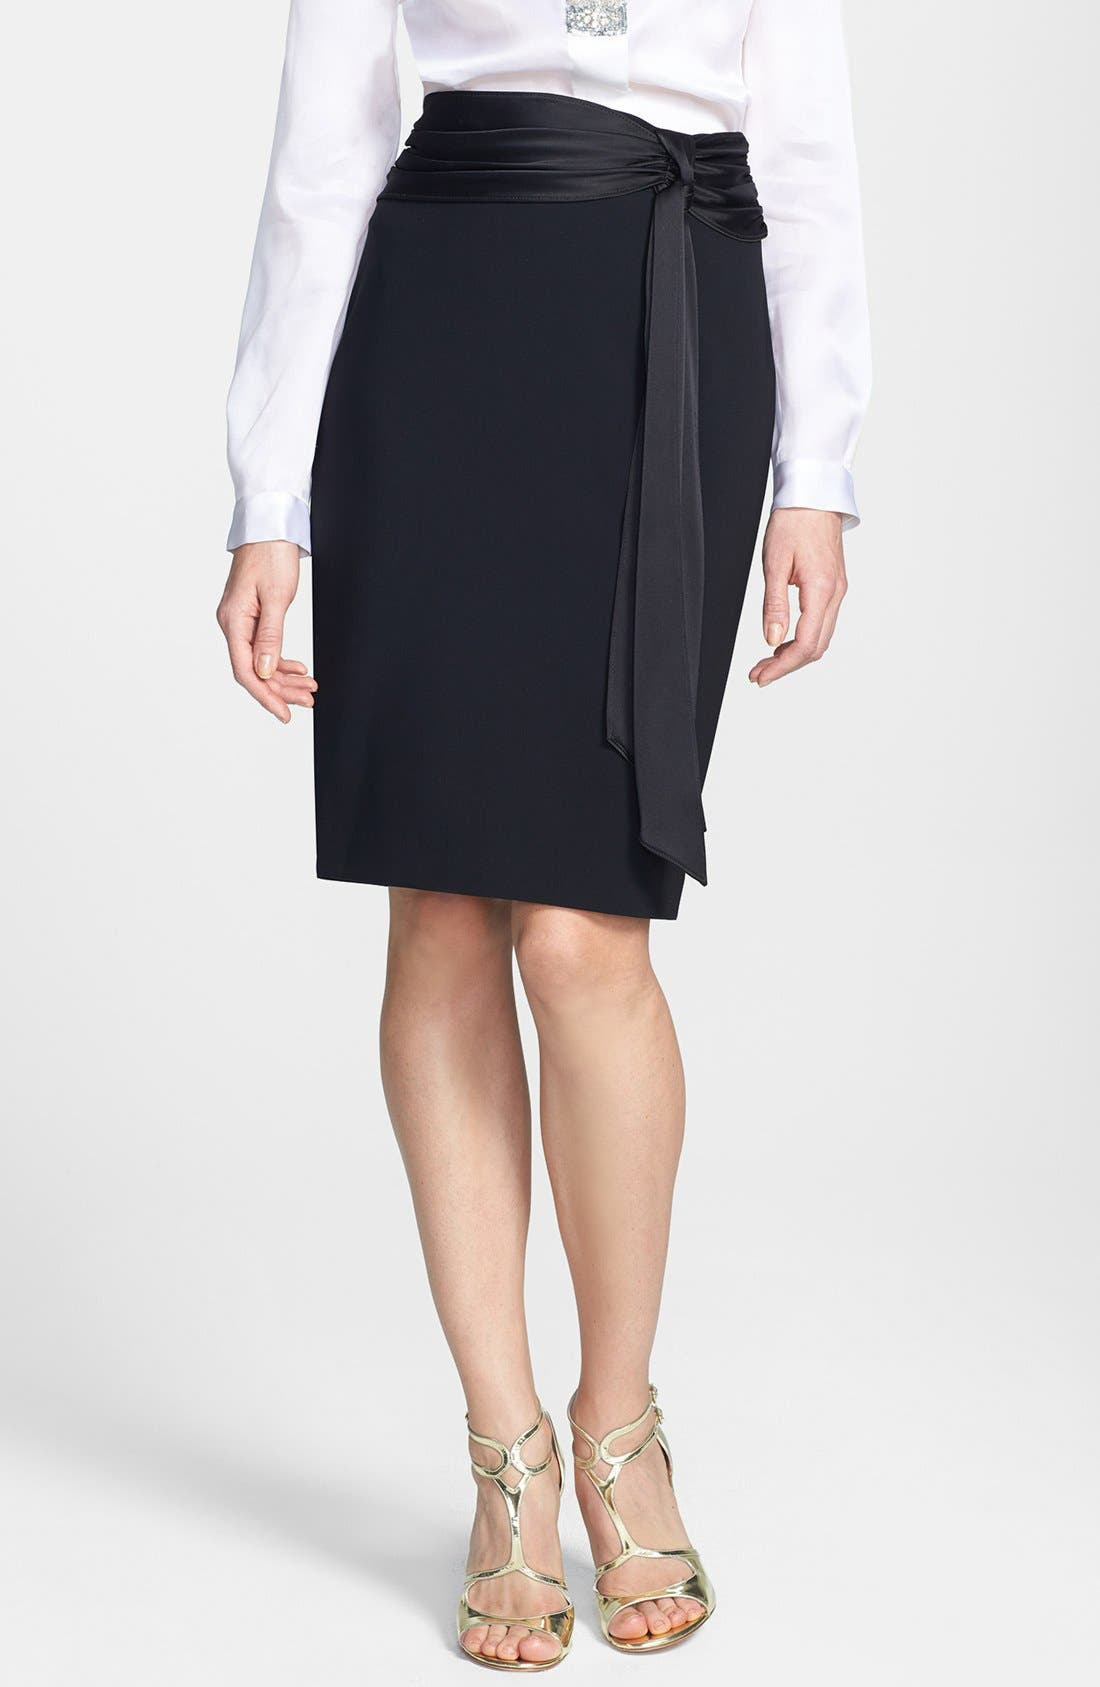 Main Image - St. John Collection Crepe Marocain Pencil Skirt with Liquid Satin Bow